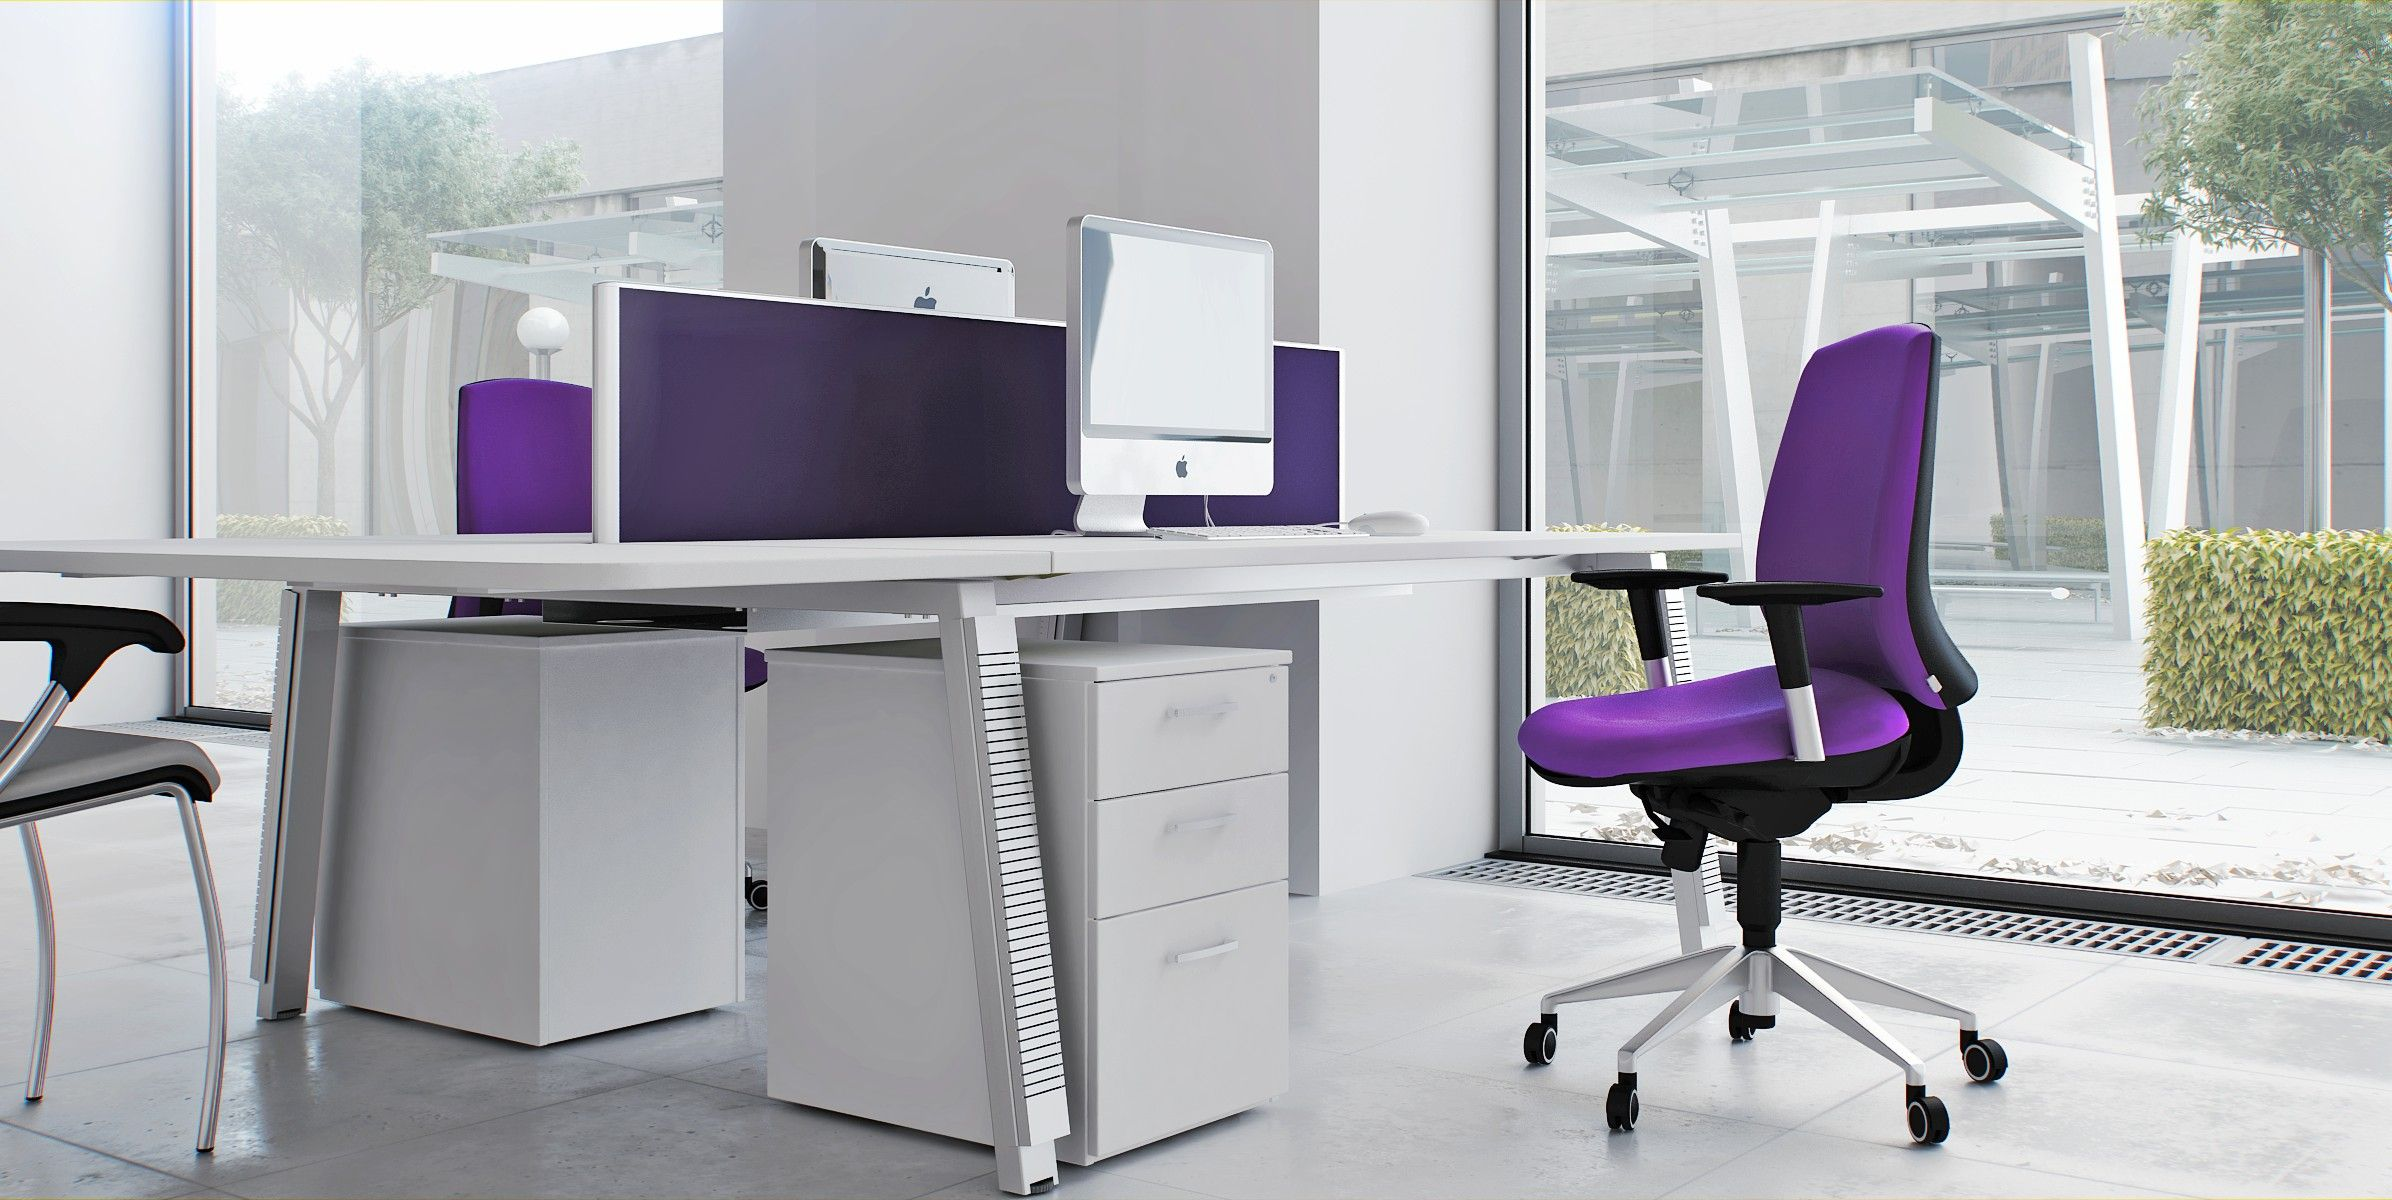 Captivating Modern Office Chair With Soft Purple Fabric Mixed With White Desk With Dark Border